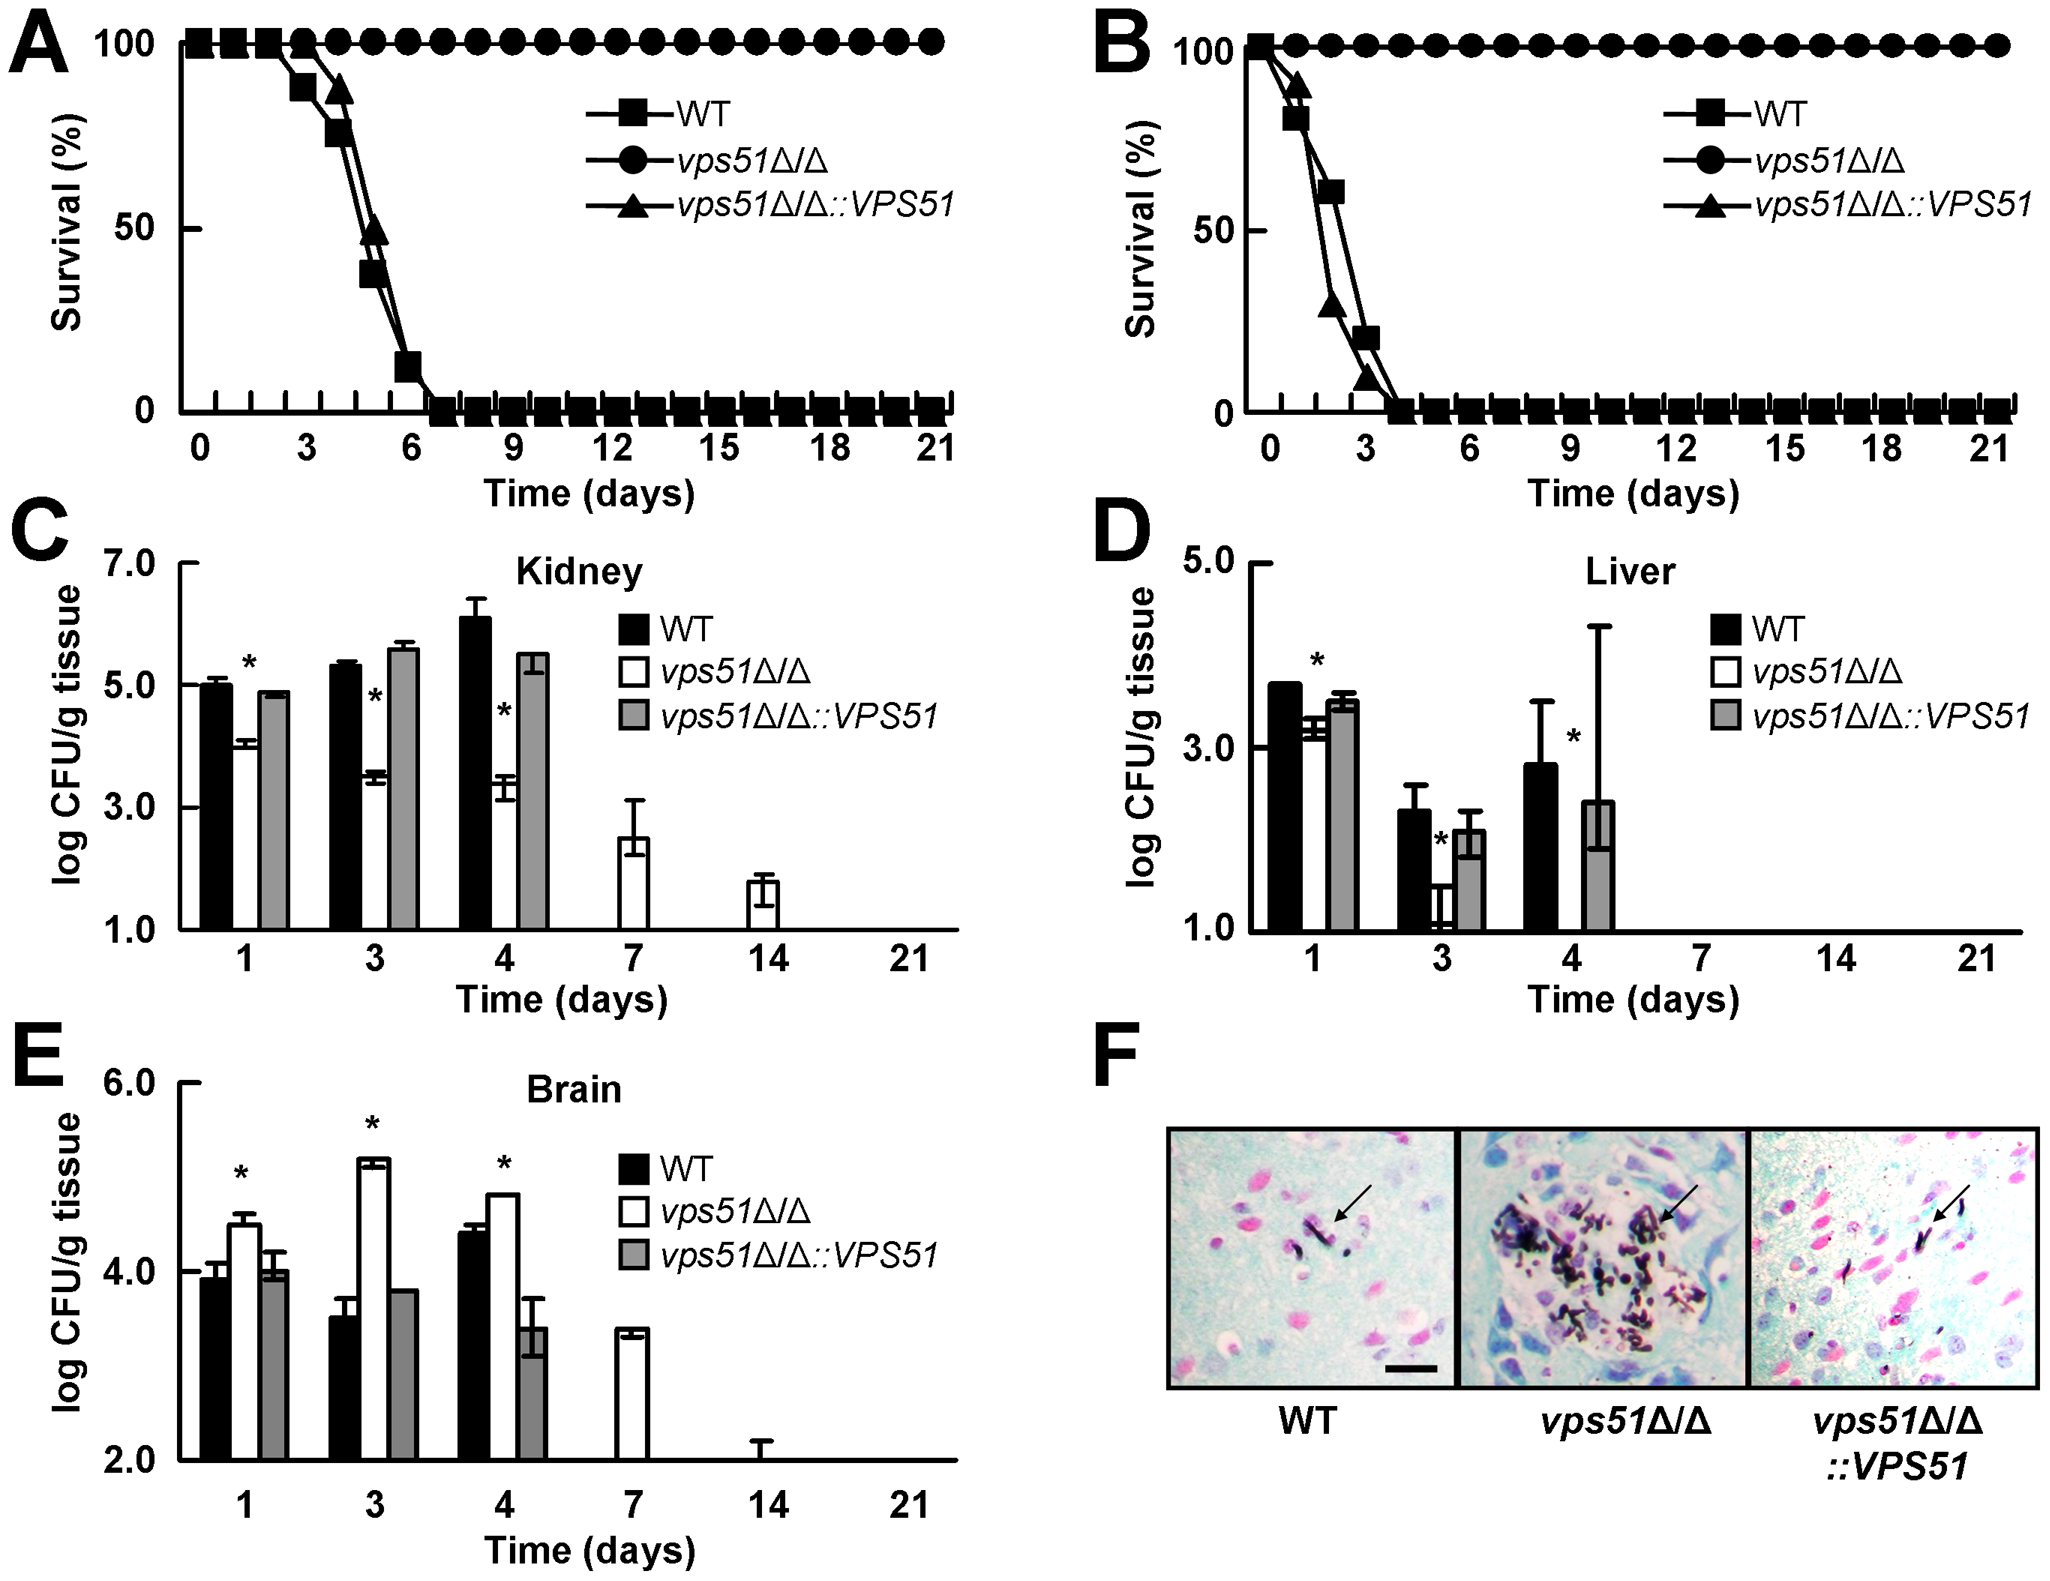 A <i>vps51</i>Δ/Δ mutant has attenuated overall virulence, but increased brain tropism during hematogenously disseminated candidiasis.